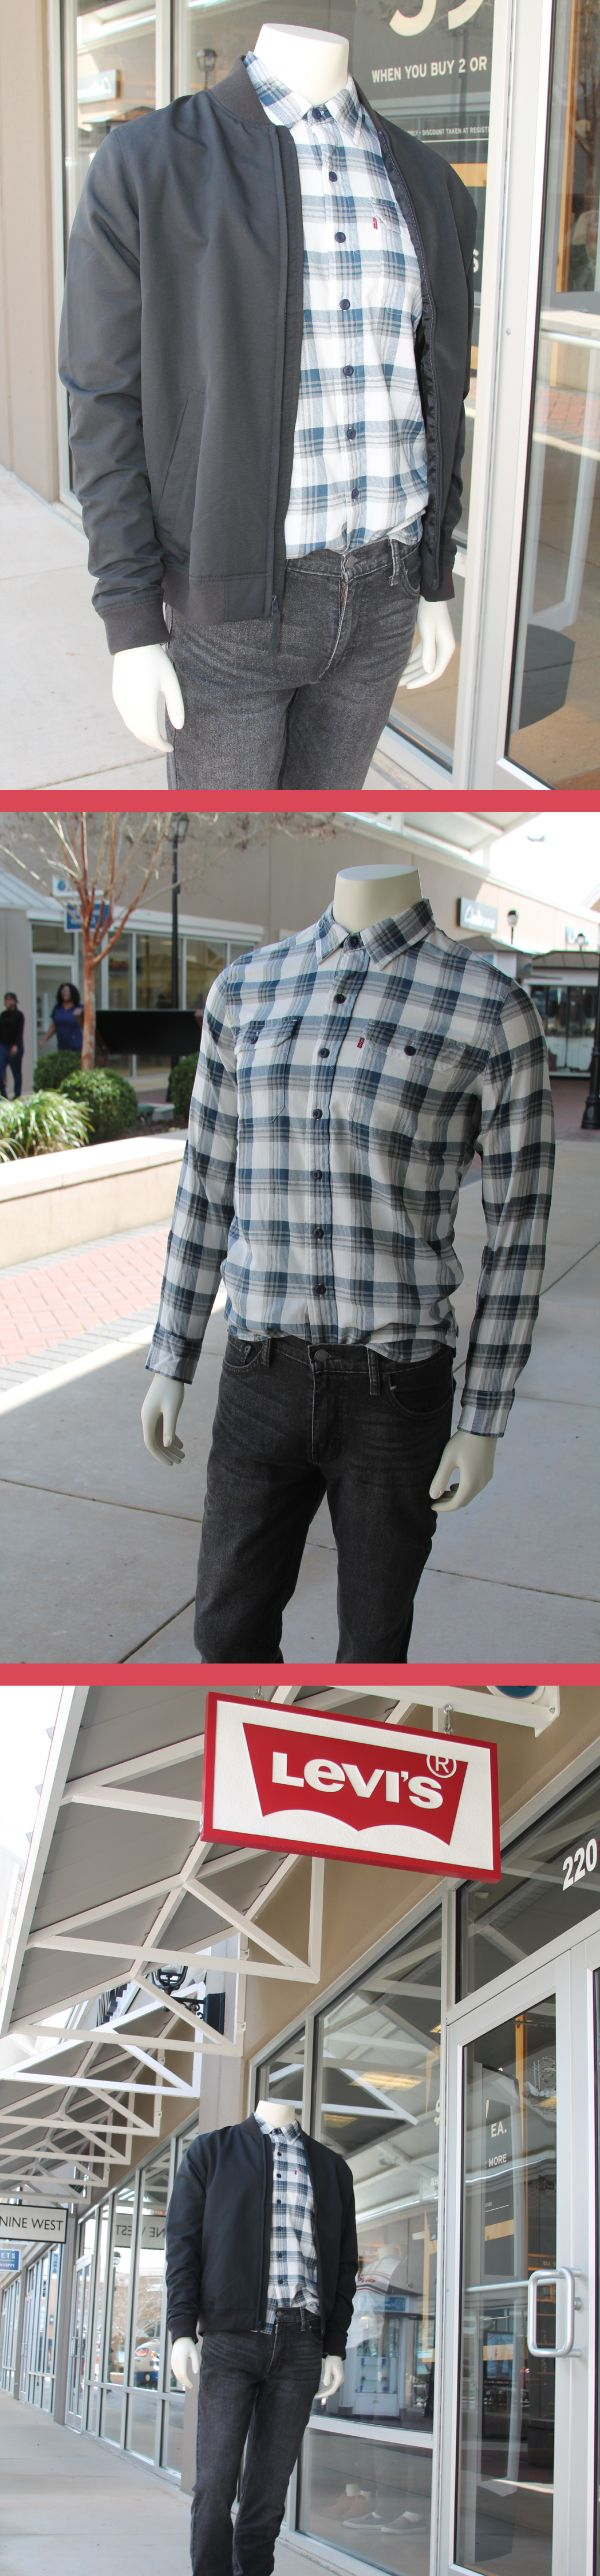 Cool and casual Spring Break look for the Men. Mix a blue plaid Levi's top with black denim jeans and add a lite weight black jacket for cool, Spring nights.  Find this look at Levi's Outlet Store at the Outlets of Mississippi in Pearl, MS!